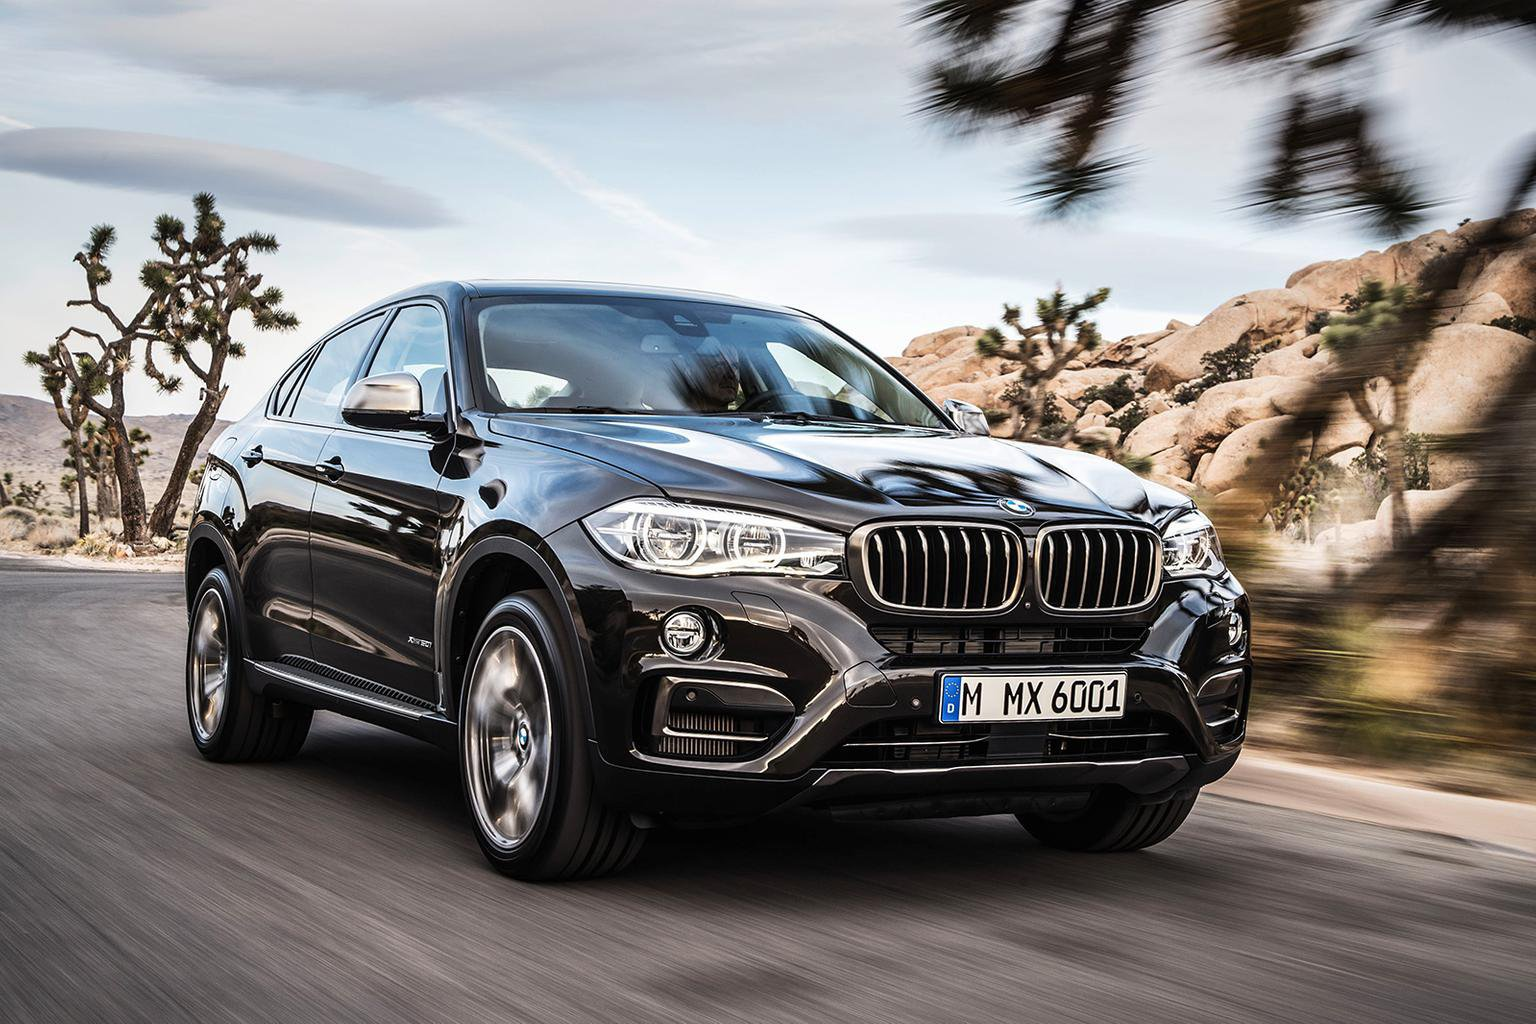 Deal of the day: BMW X6